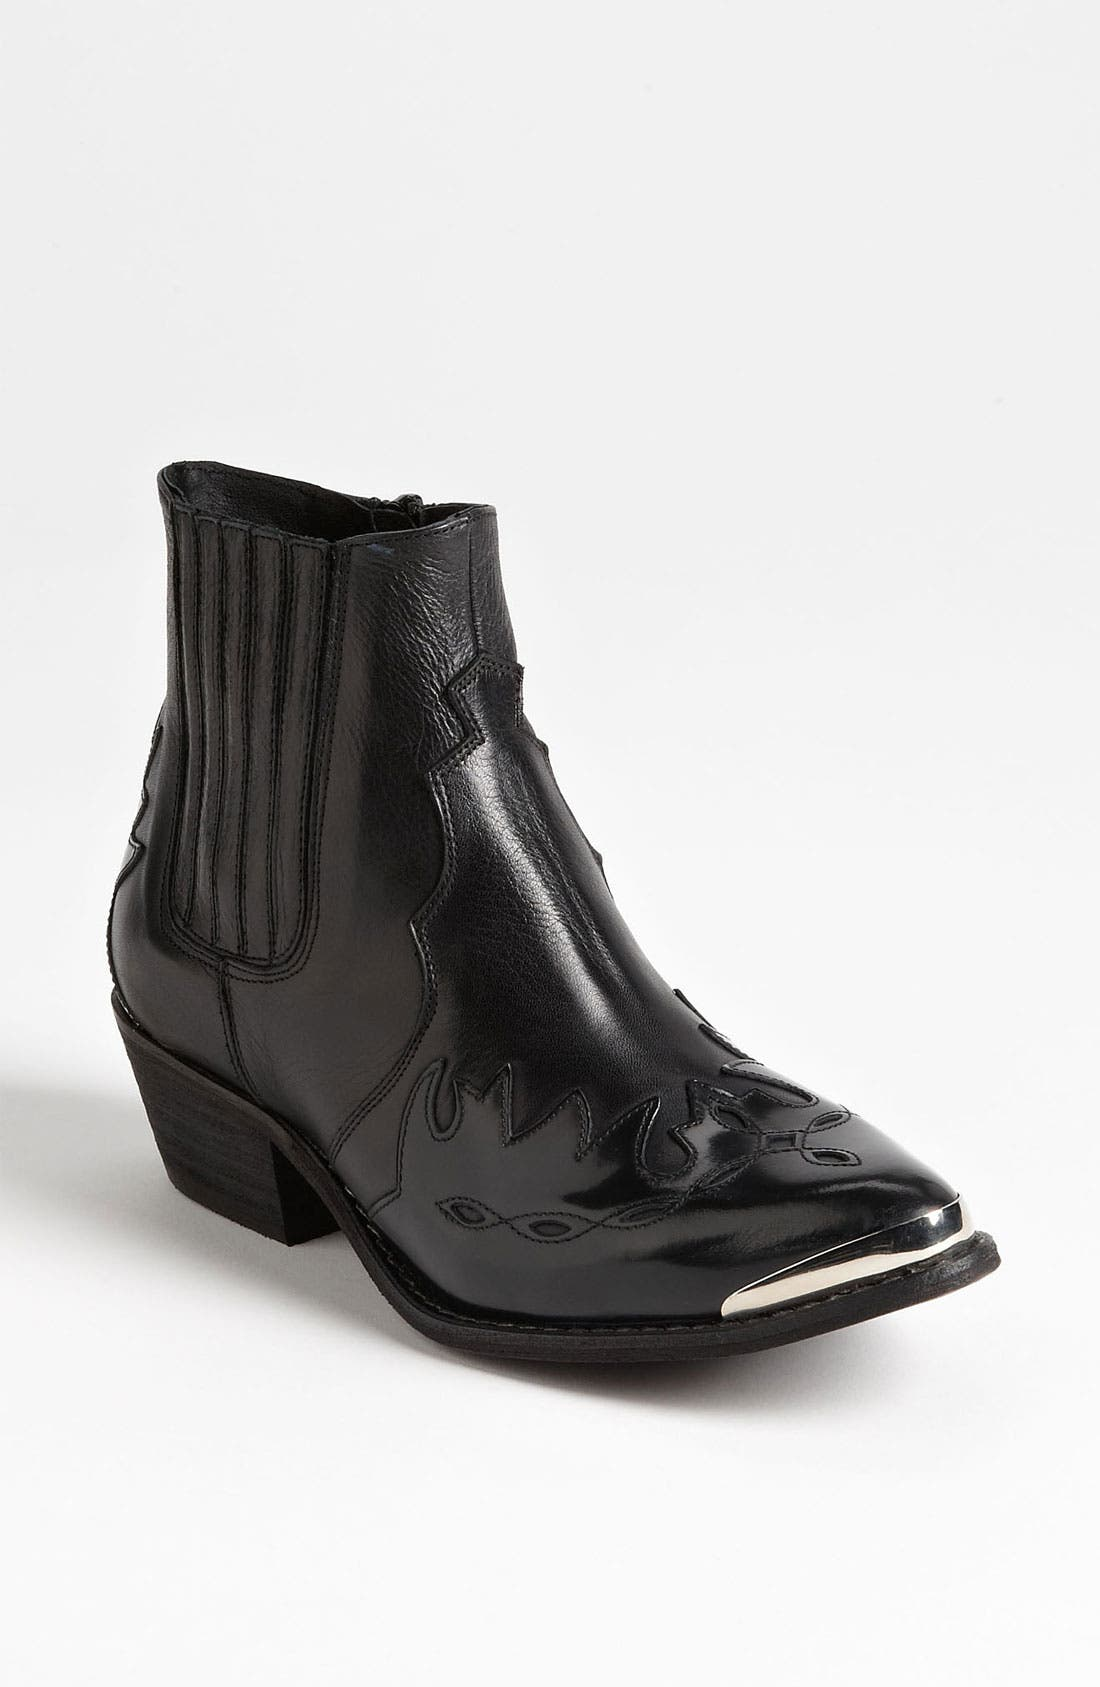 Alternate Image 1 Selected - Topshop 'Arson' Boot